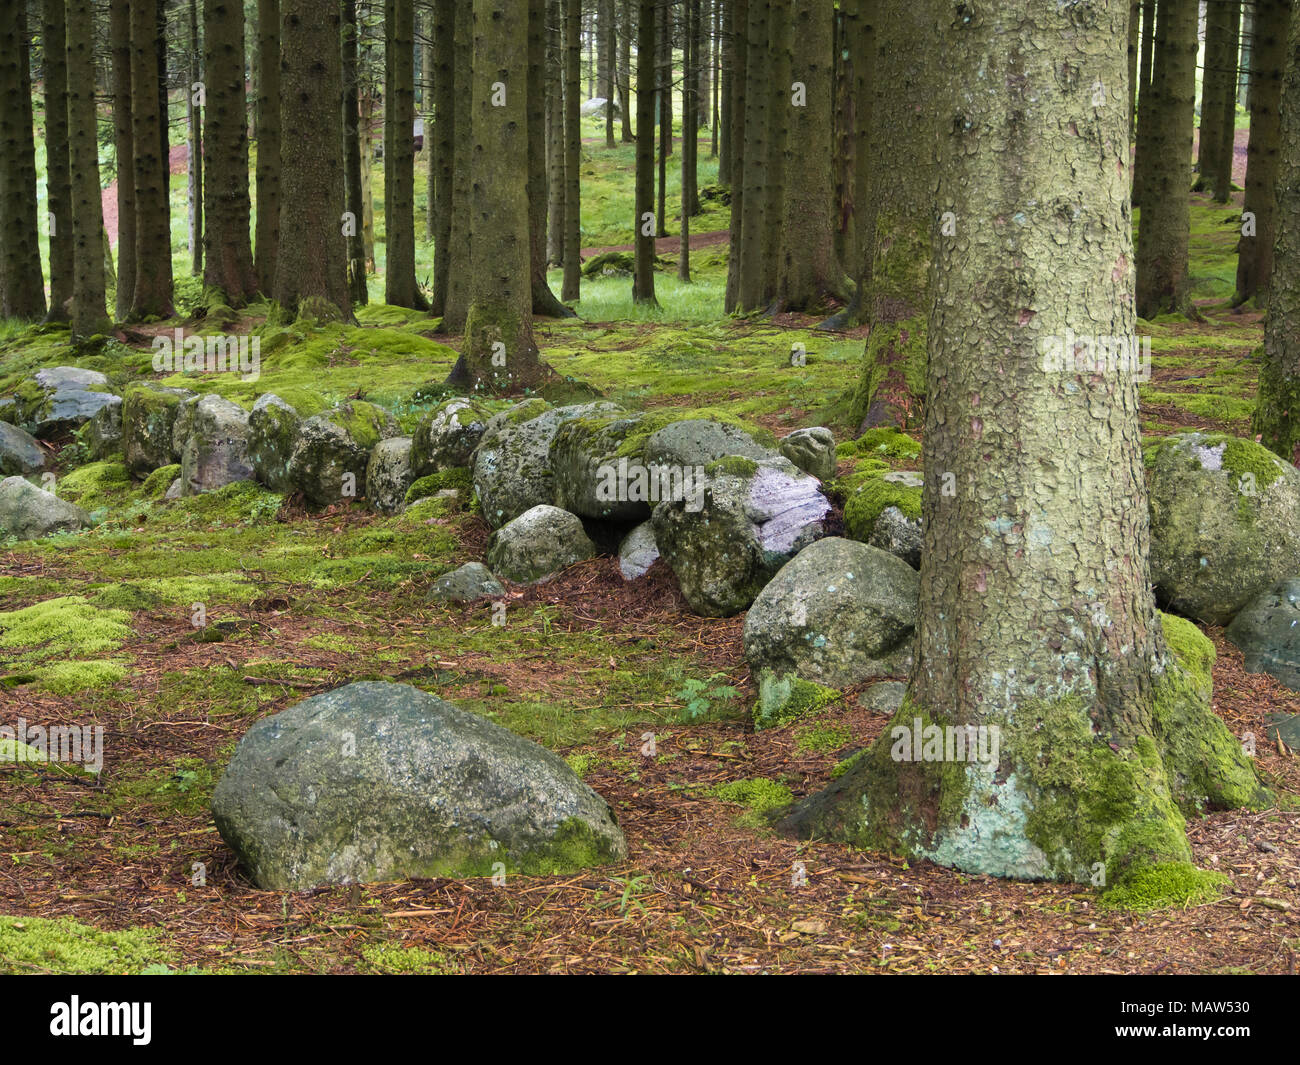 Trunks of conifers, moss and an old stonewall fence, forest floor in Rogaland Arboret in Sandnes Norway - Stock Image